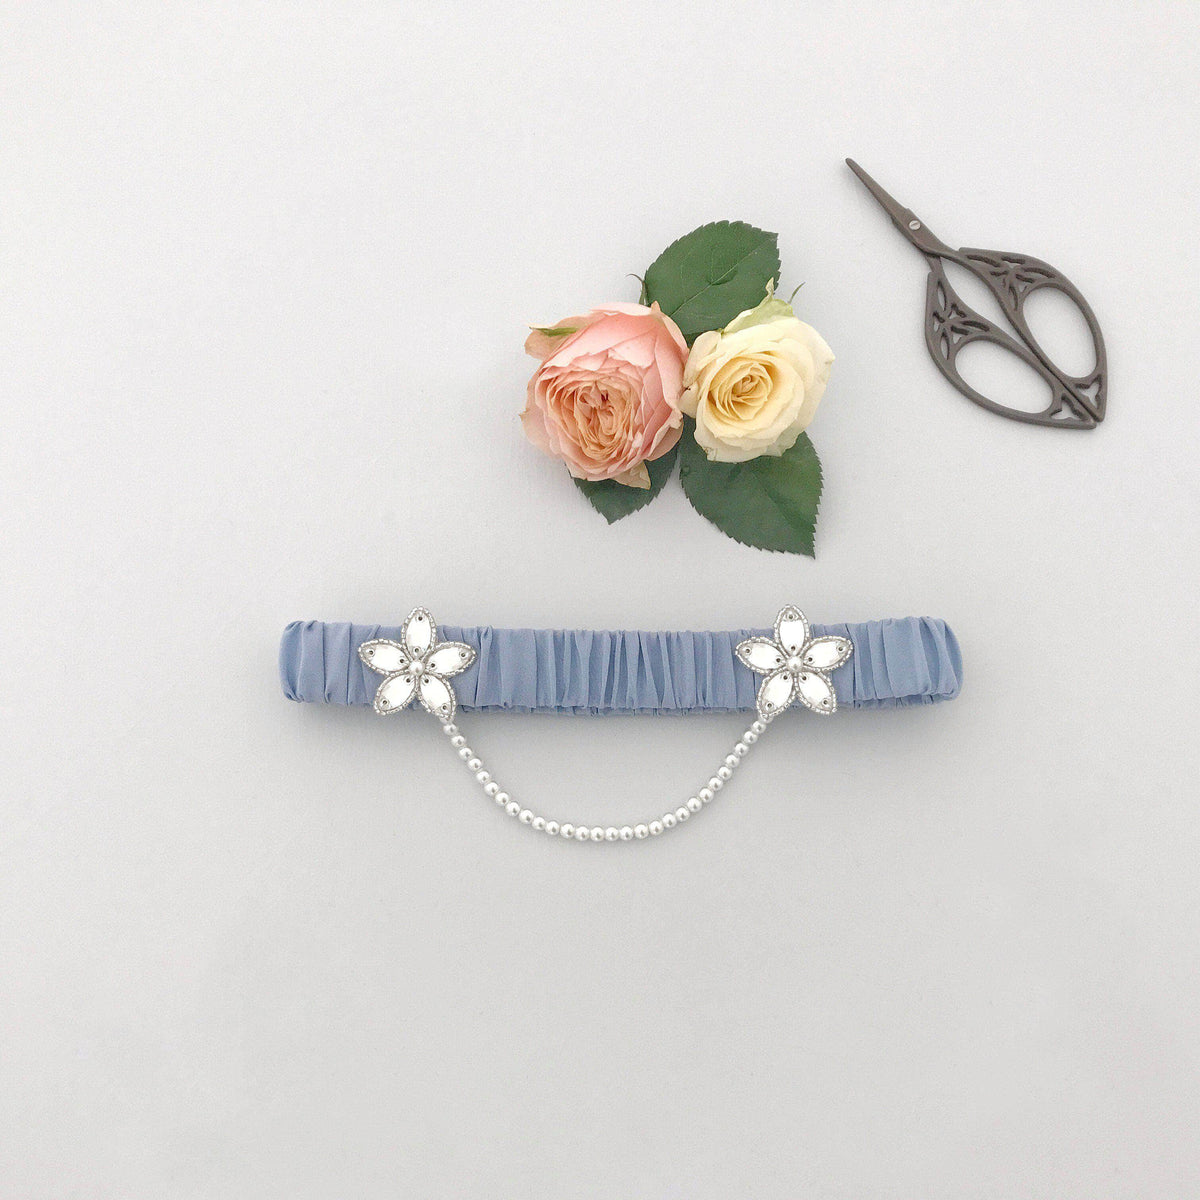 Wedding Garter Cornflower blue / Extra small 35-40cm (13.5-16 inch) Luxury silk wedding garter with pearl chain (various colours) - 'Iva'